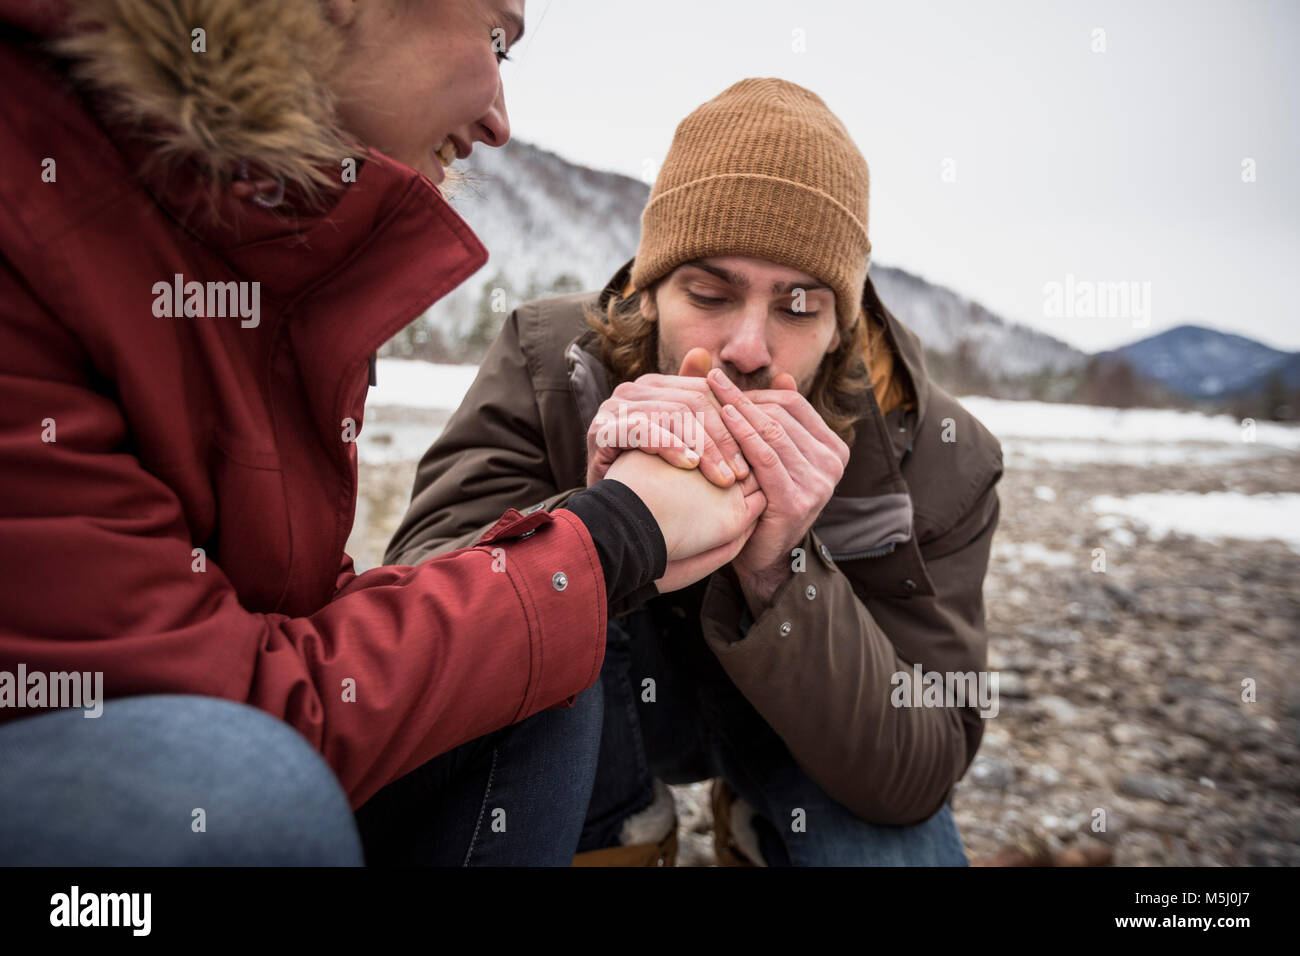 Couple on a trip in winter with man warming hands of woman - Stock Image